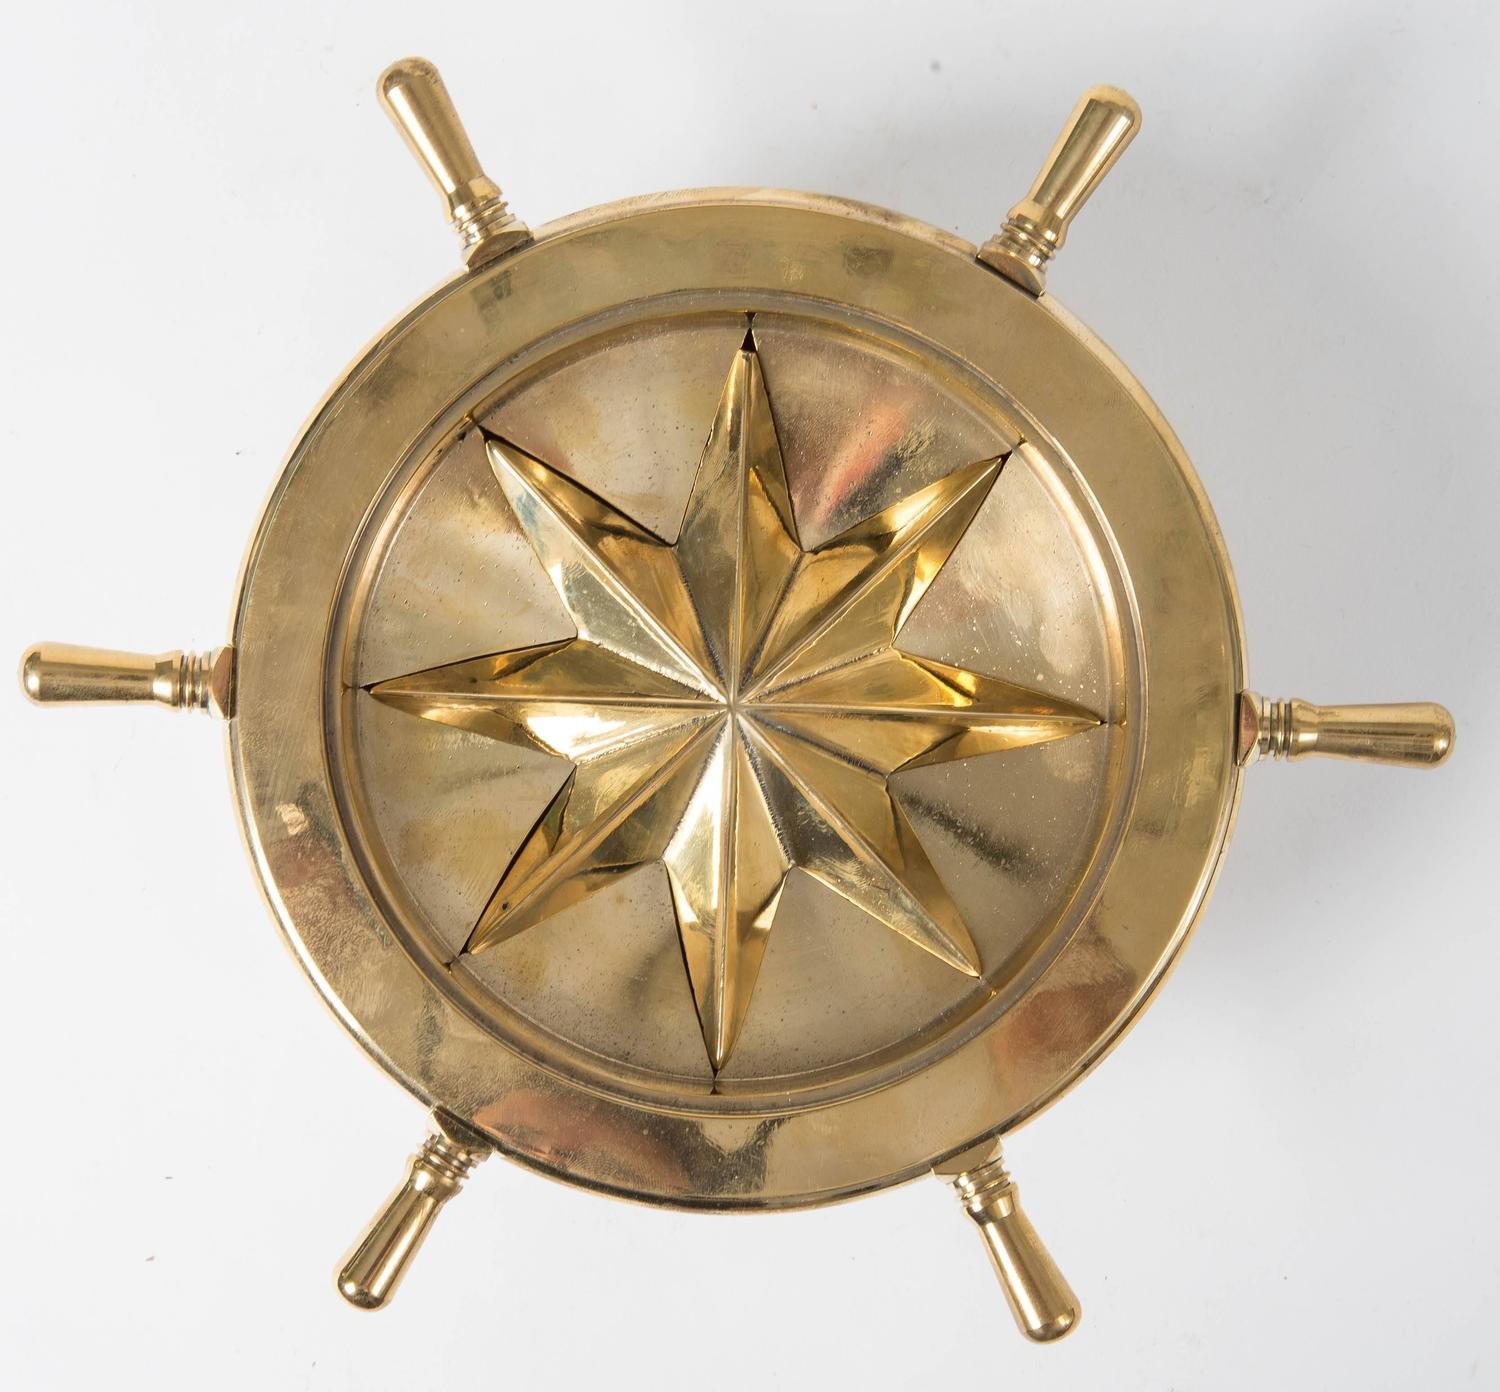 revolving chair without wheels boxed cushions small brass nautical themed ash tray with rotating ships